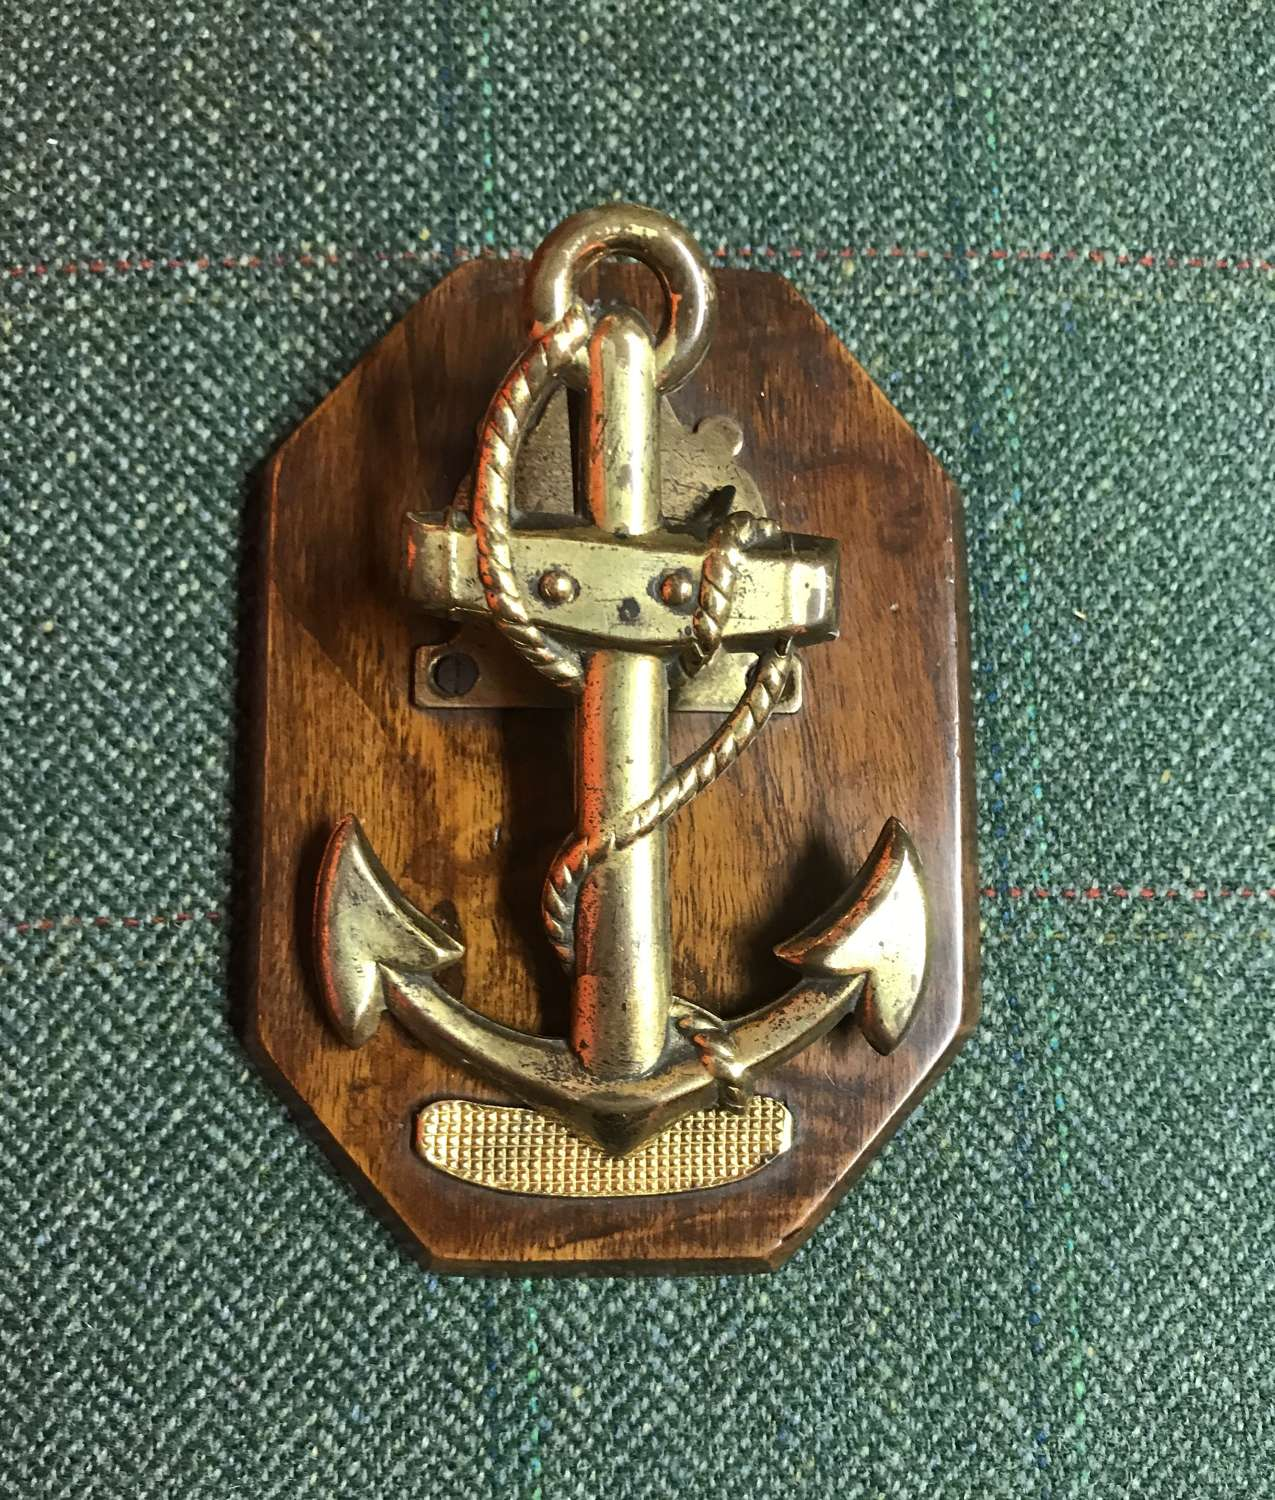 19th c. letter clip - fouled anchor